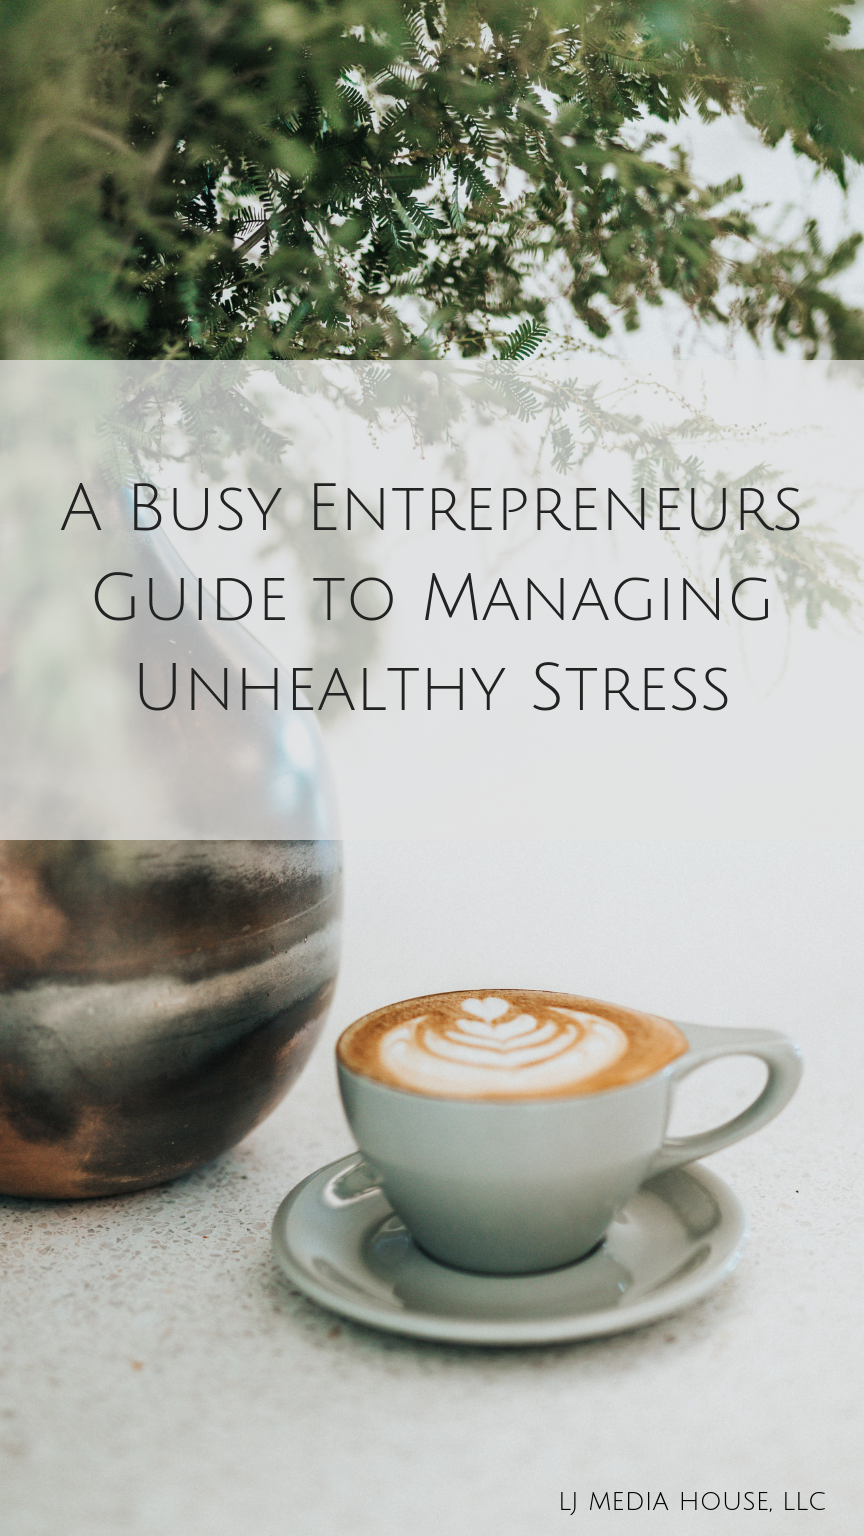 A Busy Entrepreneurs Guide to Managing Unhealthy Stress- LJ Media House